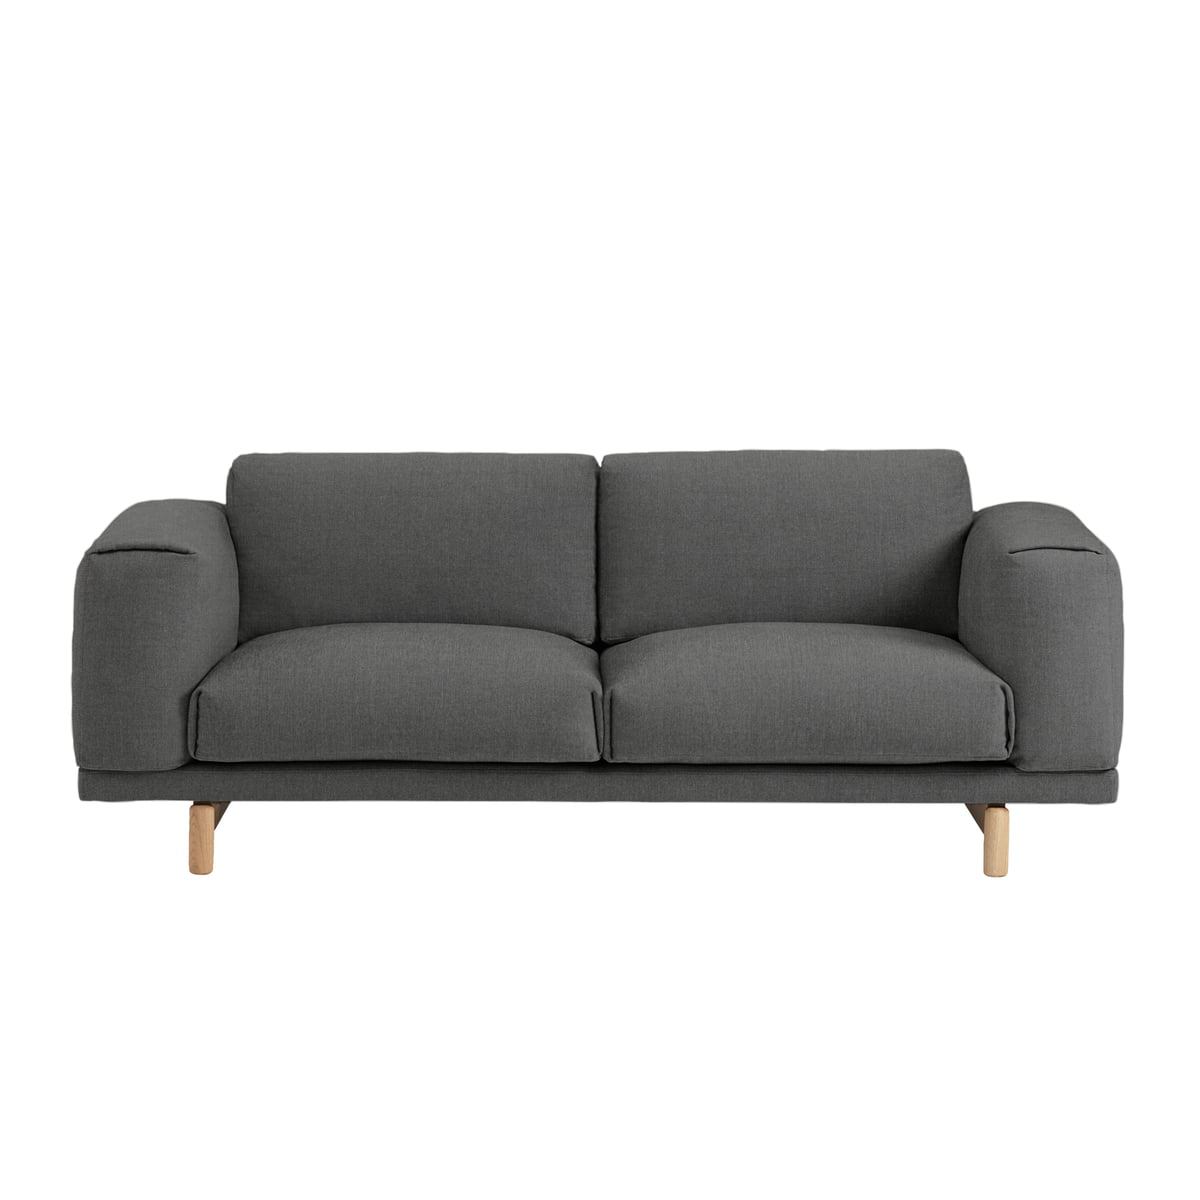 rest sofa 2 seater muuto connox shop. Black Bedroom Furniture Sets. Home Design Ideas